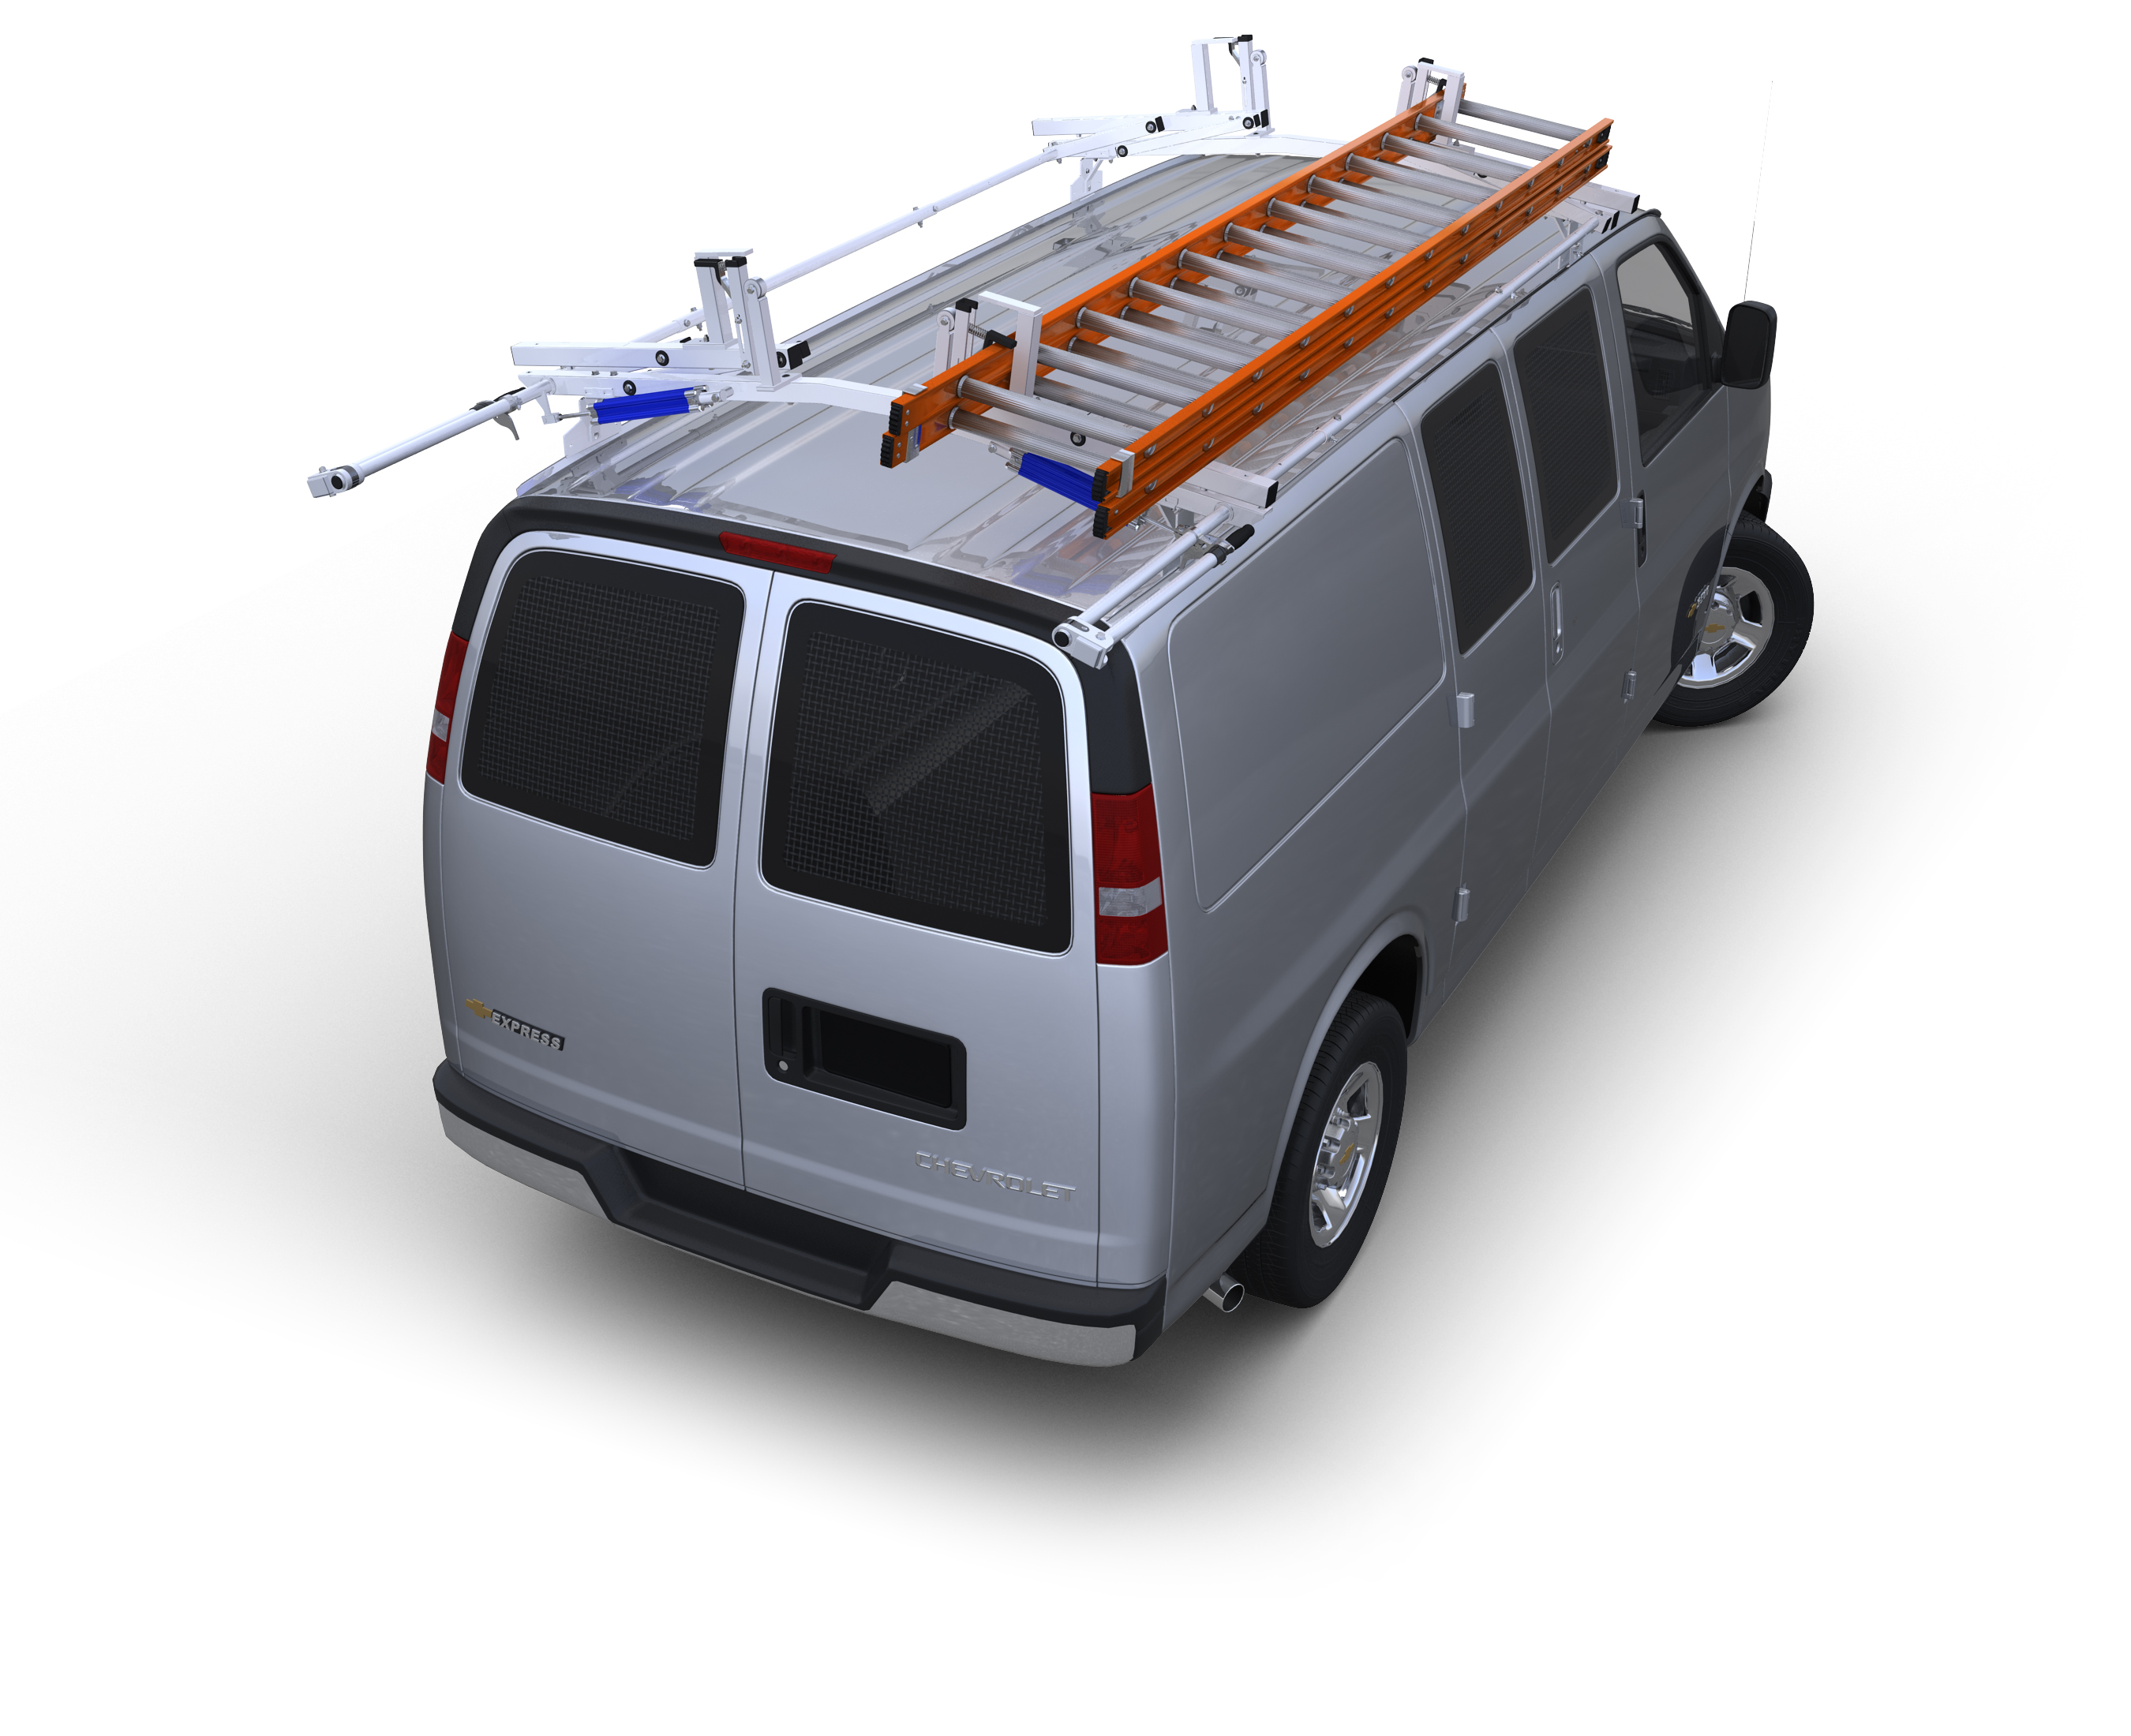 2013 & Older Ford Transit Connect Aluminum Side Access Rotation Rack